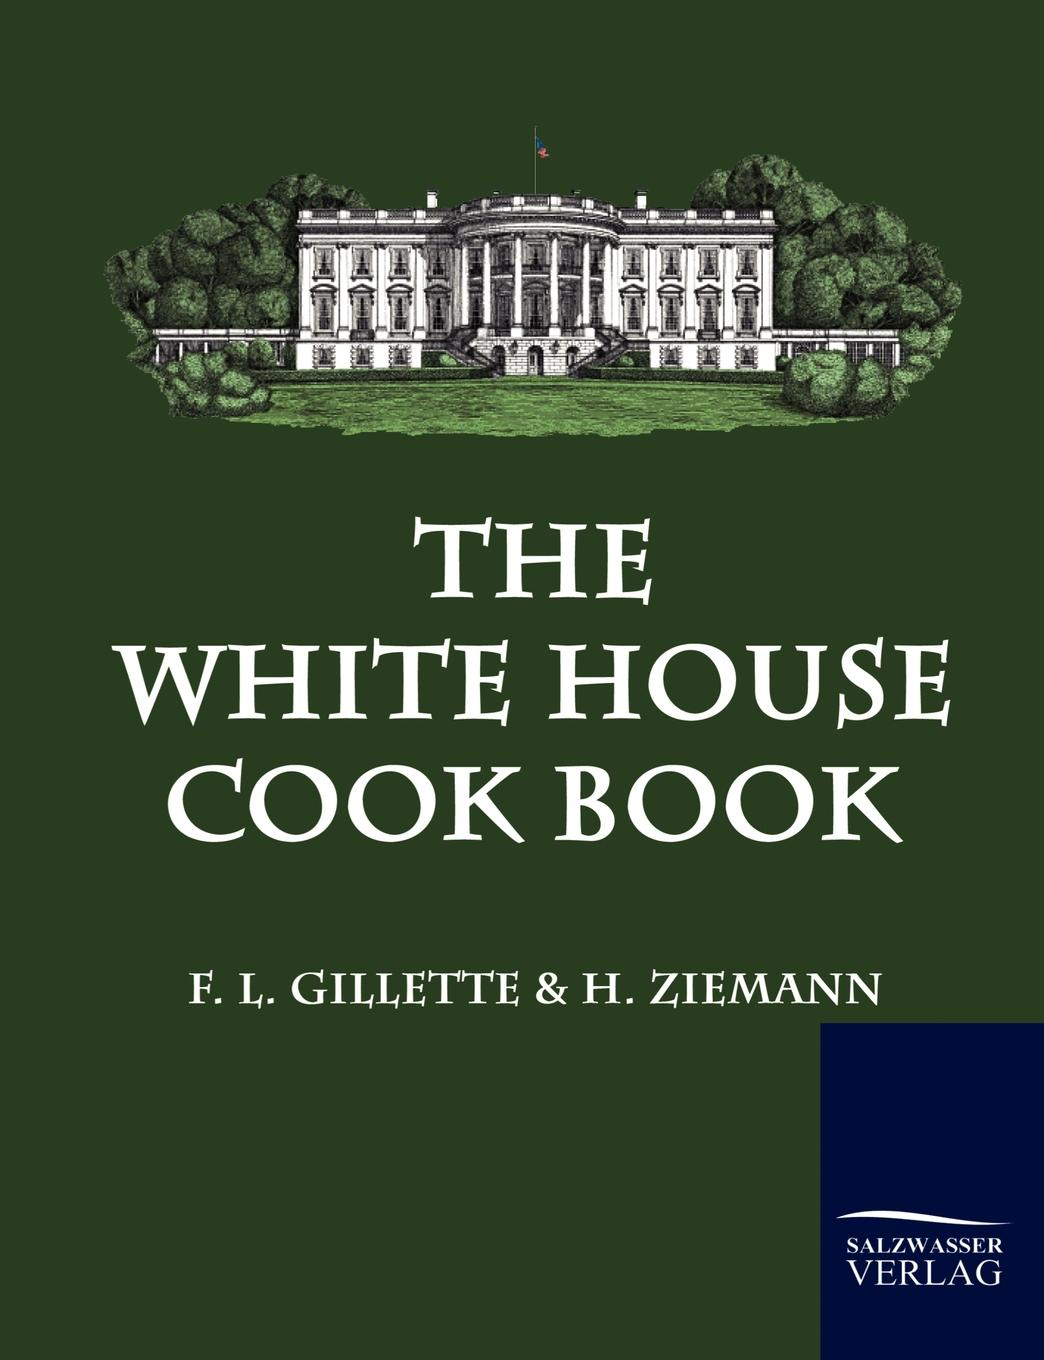 лучшая цена F. L. Gillette, H. Ziemann The White House Cook Book